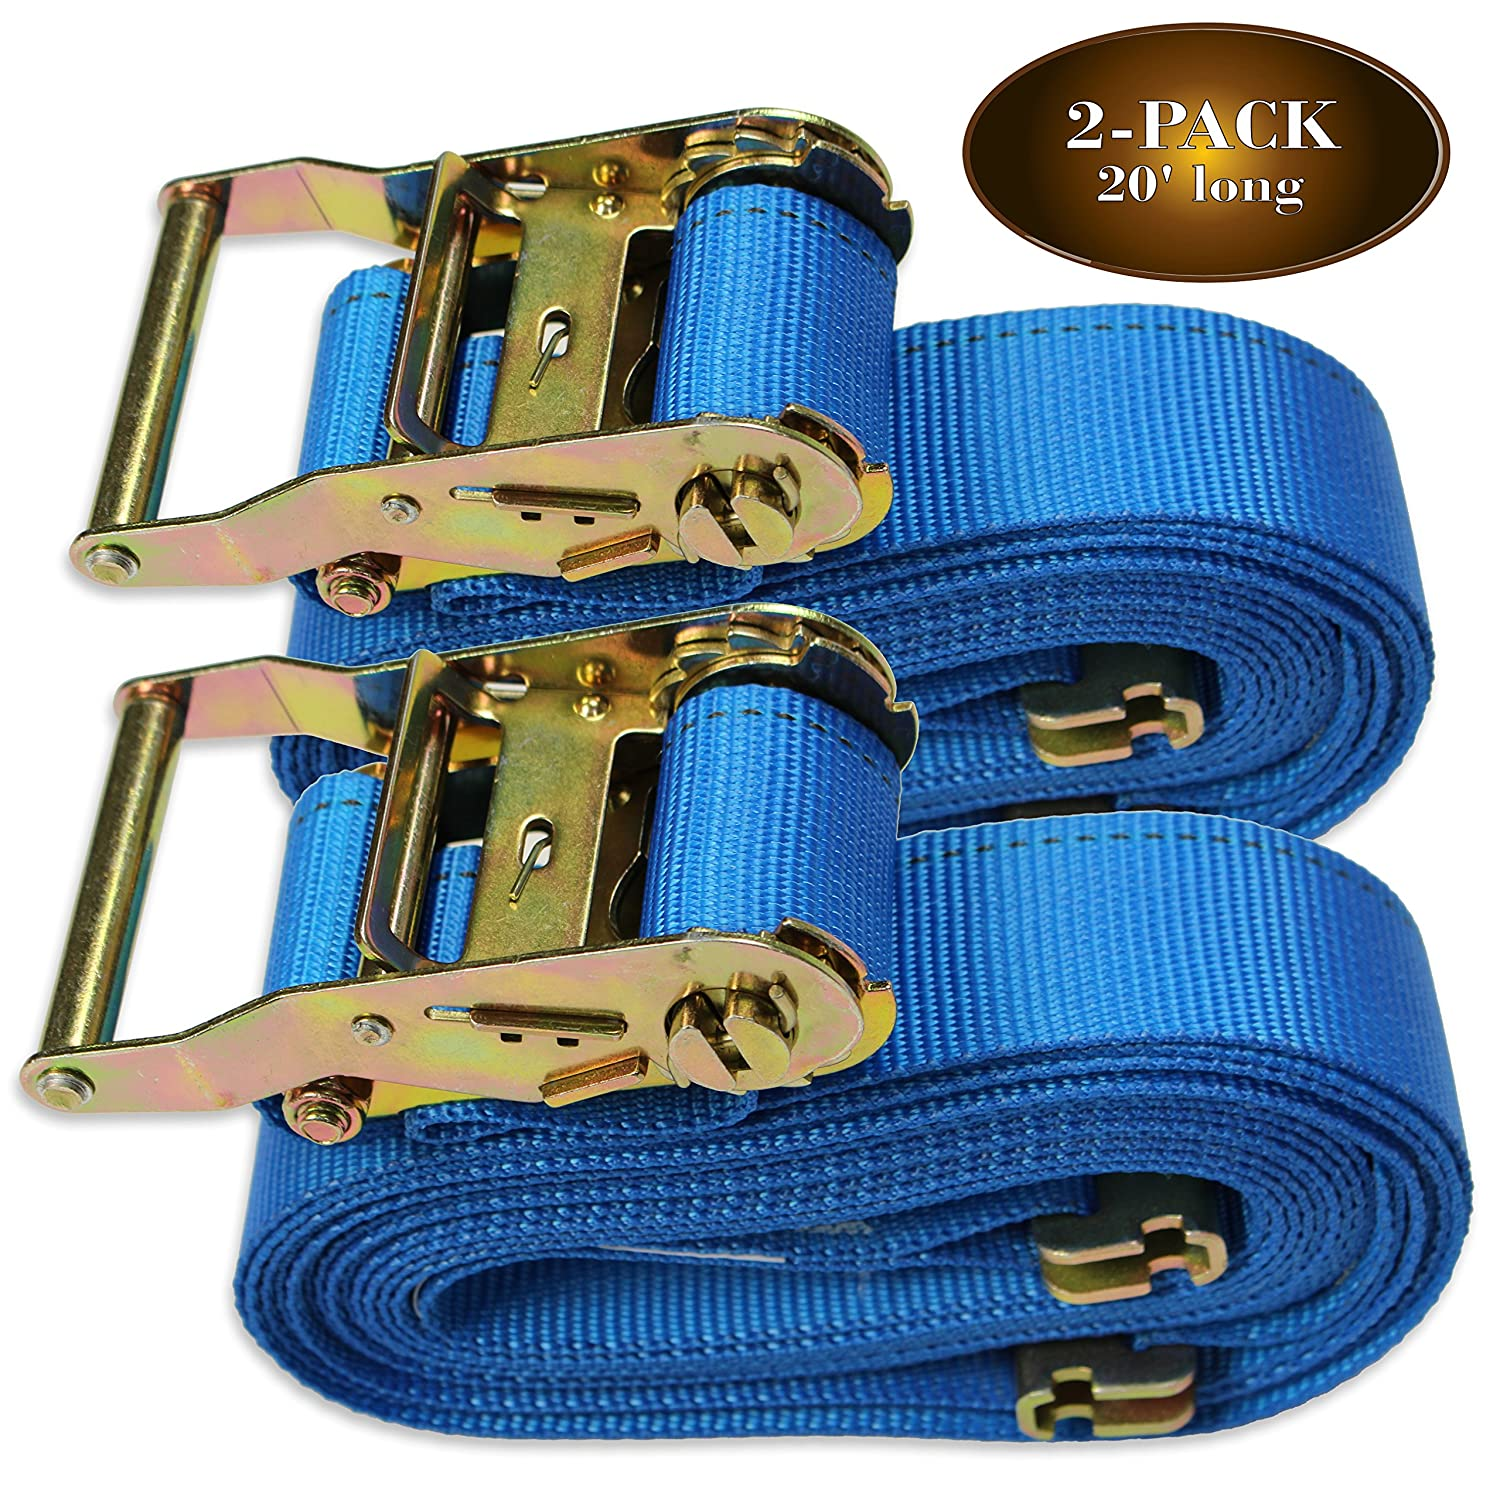 TWO 2' x 20' E Track Ratcheting Strap Heavy Duty Cargo TieDowns, Durable Blue Polyester Tie-Down Ratchet Straps, ETrack Spring Fittings, Tie Down Motorcycles, Trailer Loads, by DC Cargo Mall 220rsef